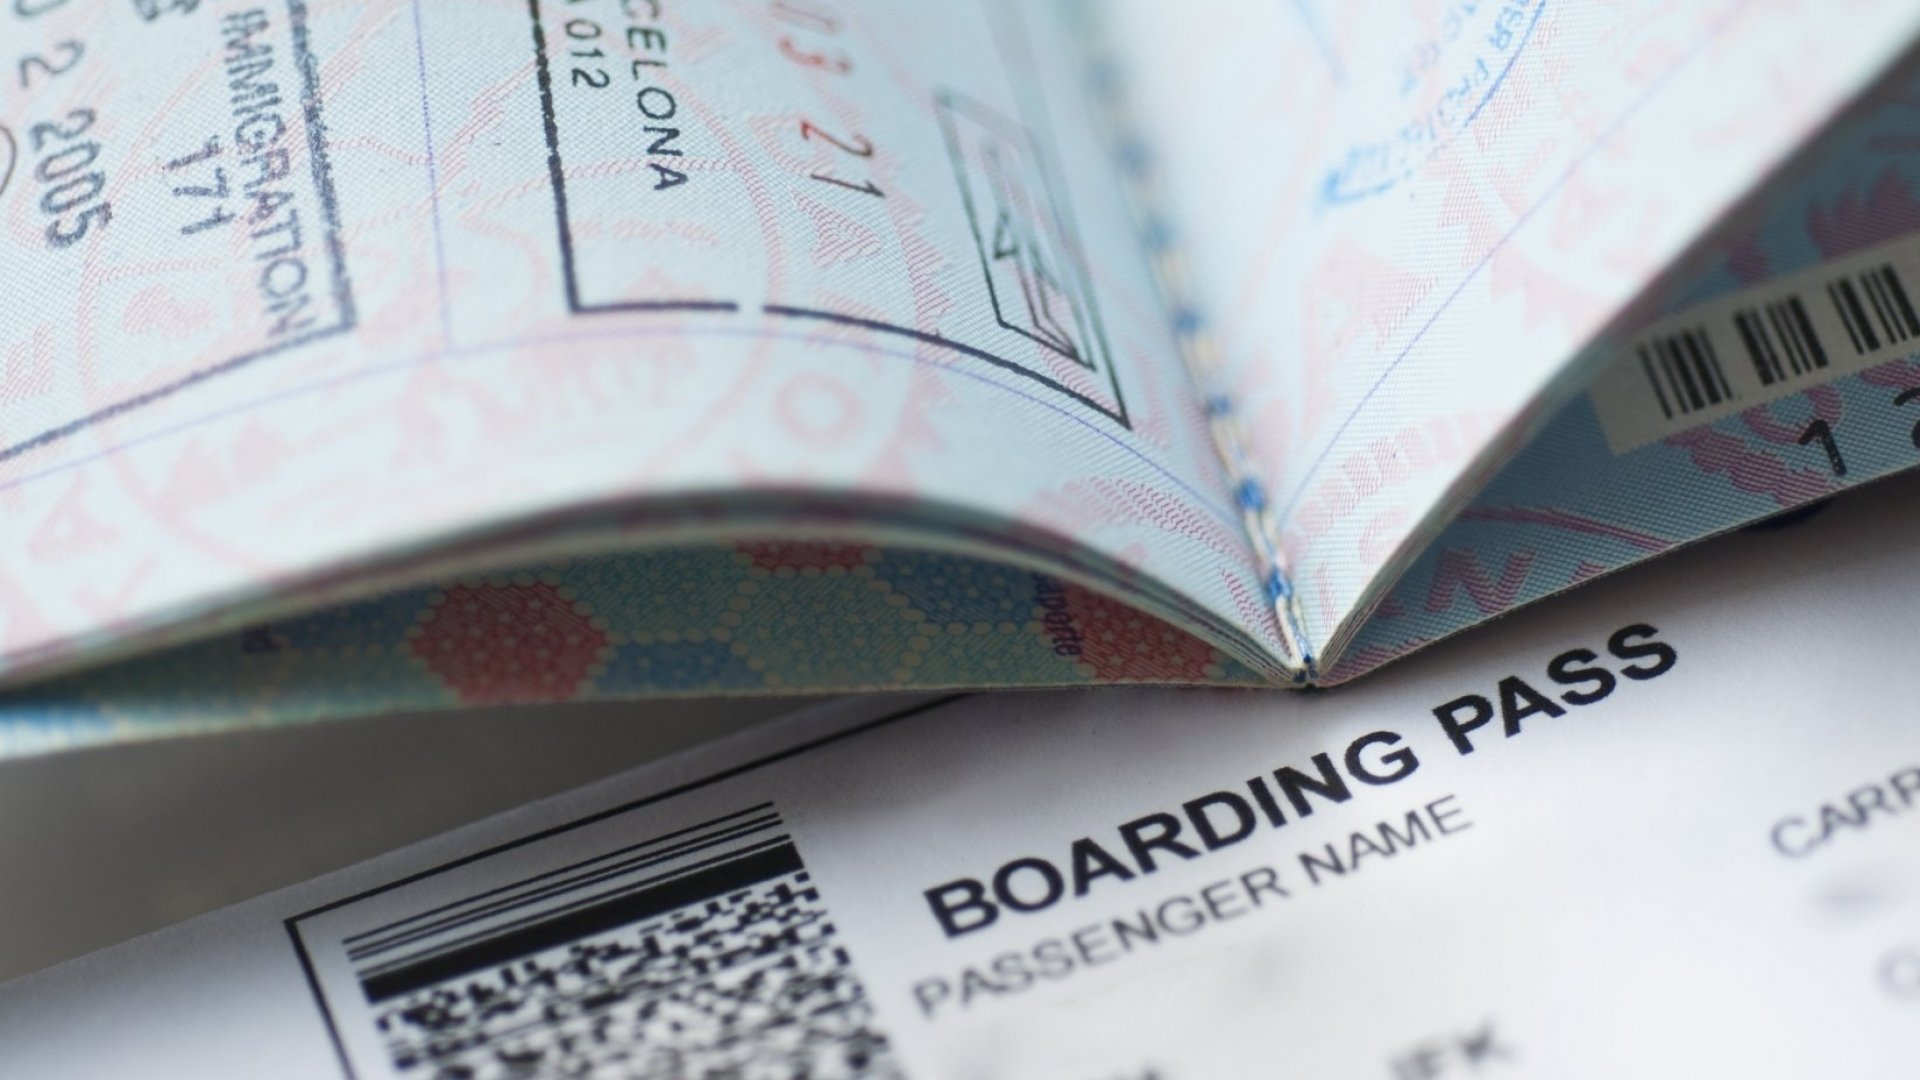 Depending on the airline, the barcode on the bottom of boarding passes may contain sensitive information.